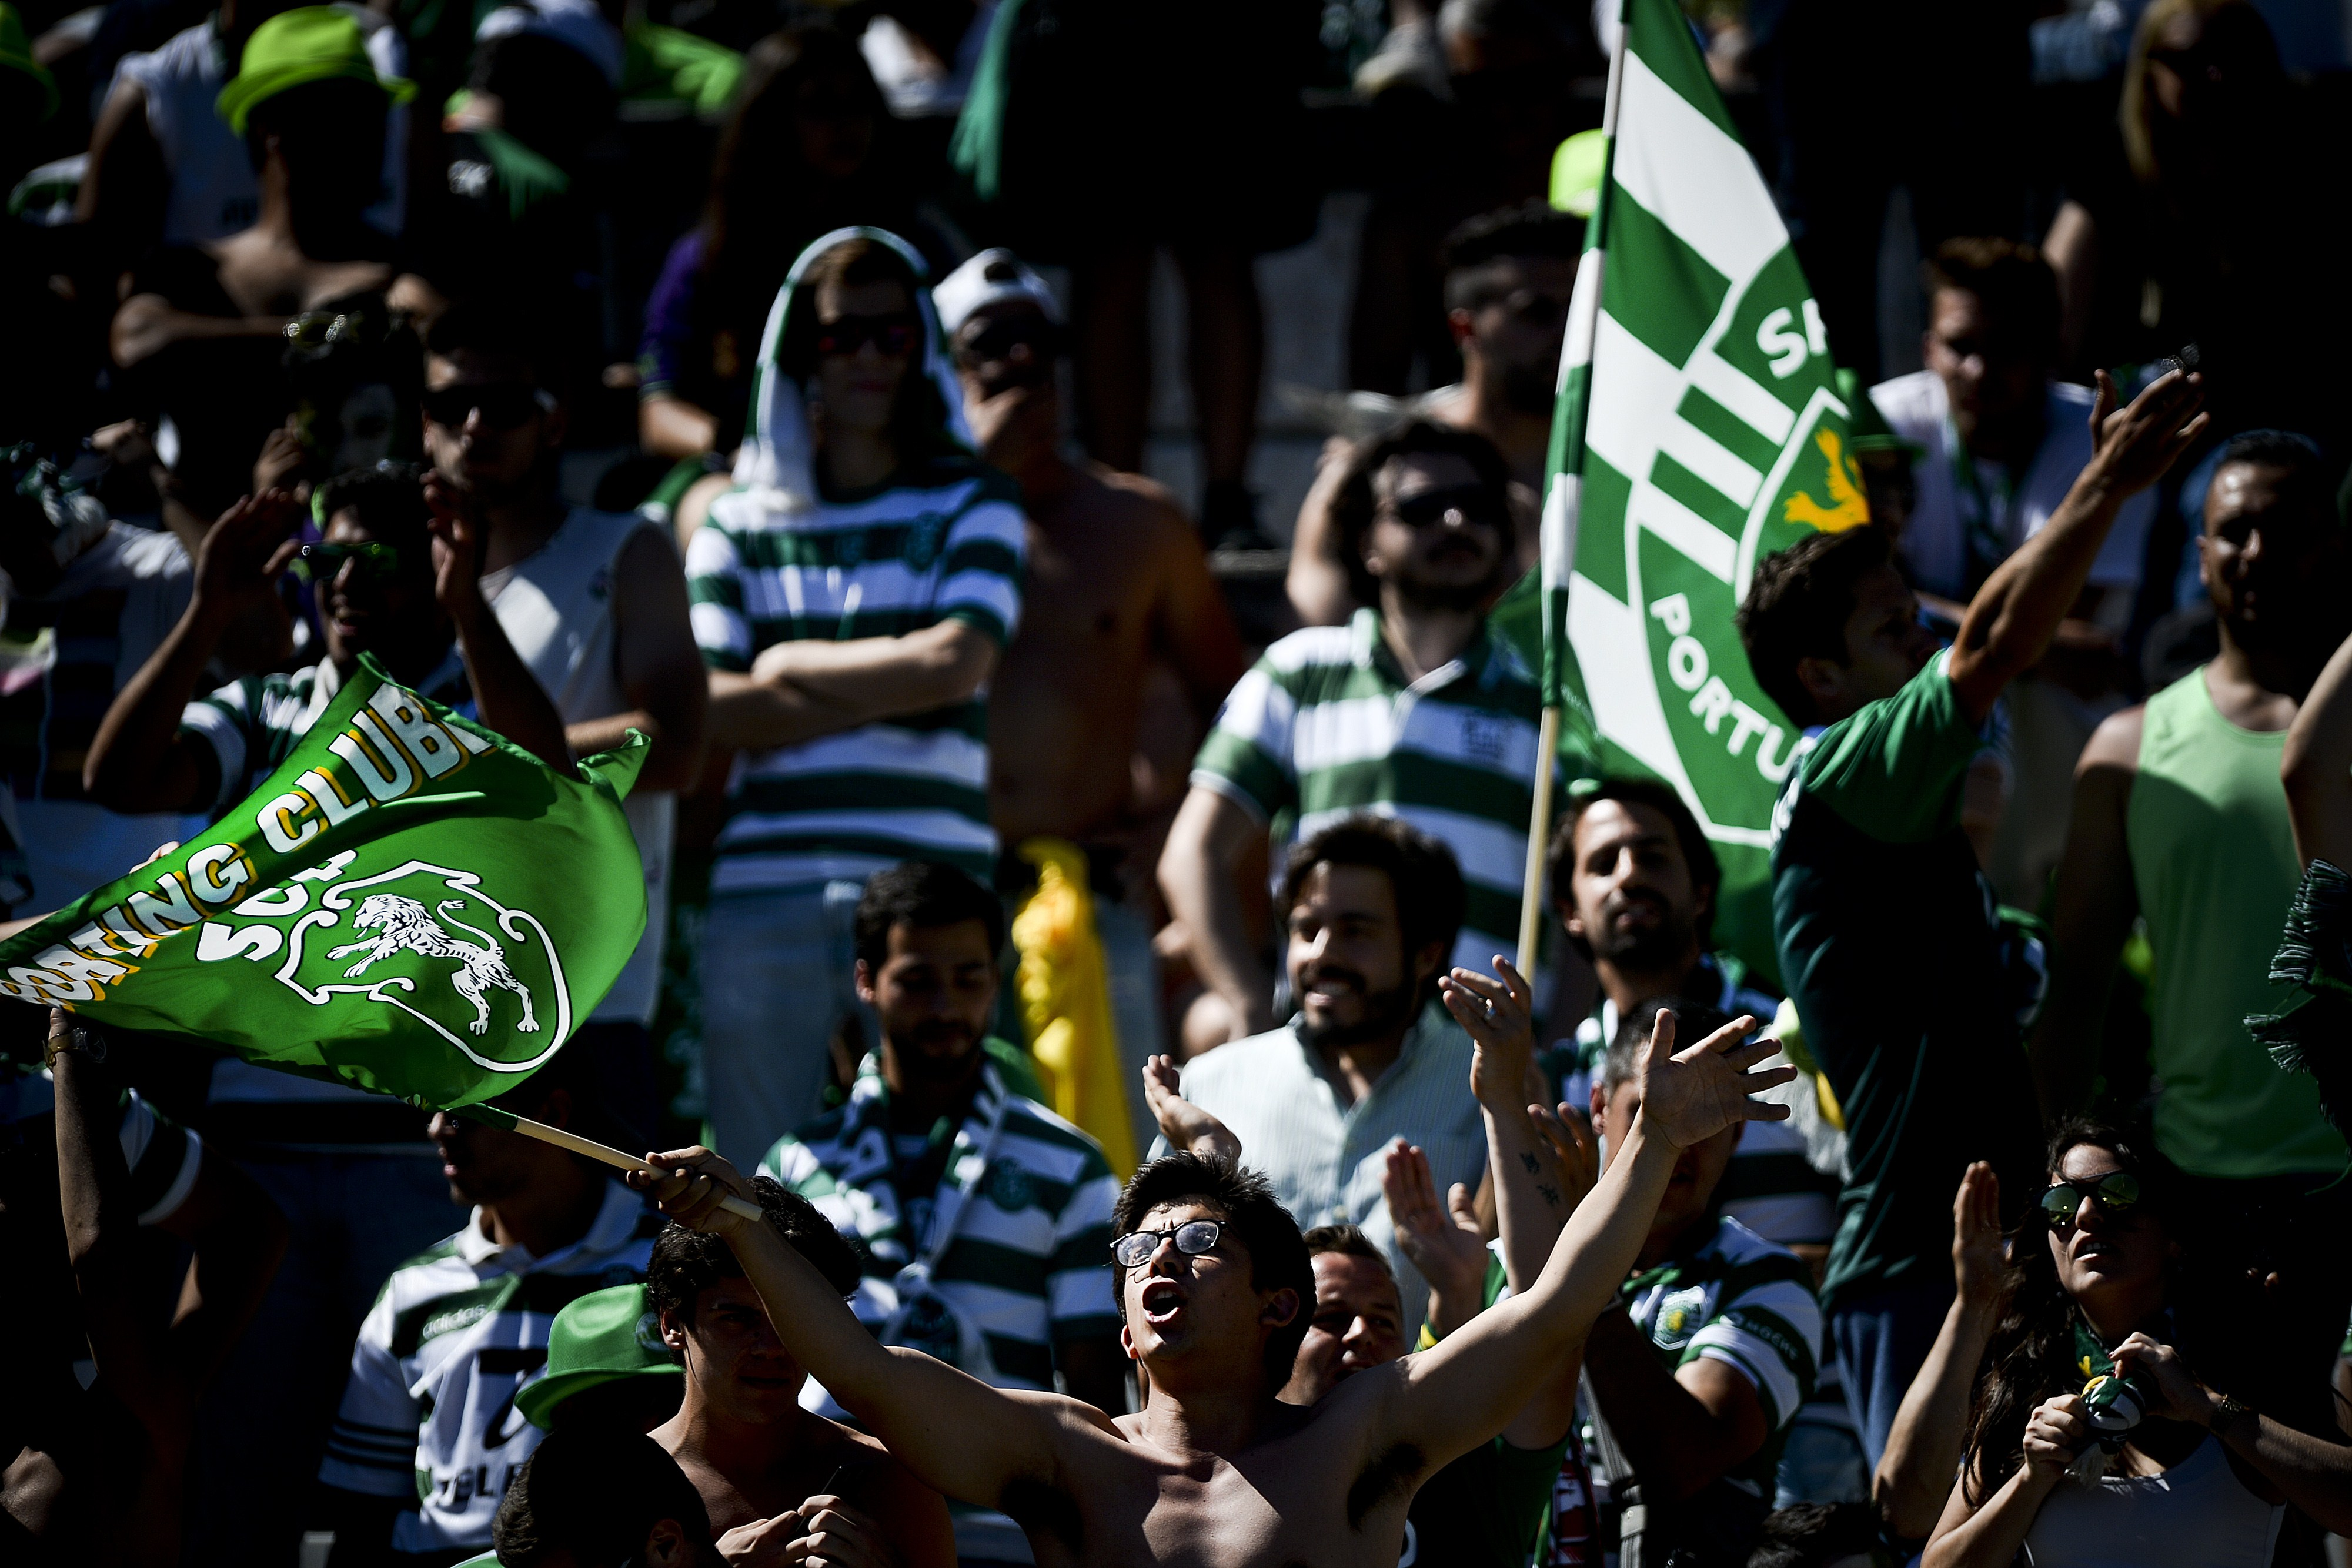 Sporting's supporters wave flags and shout slogans moments before the Taca de Portugal (Portuguese Cup) football match final Sporting CP vs SC Braga at Jamor stadium in Oeiras, outskirts of Lisbon on May 31, 2015. AFP PHOTO / PATRICIA DE MELO MOREIRA (Photo credit should read PATRICIA DE MELO MOREIRA/AFP/Getty Images)